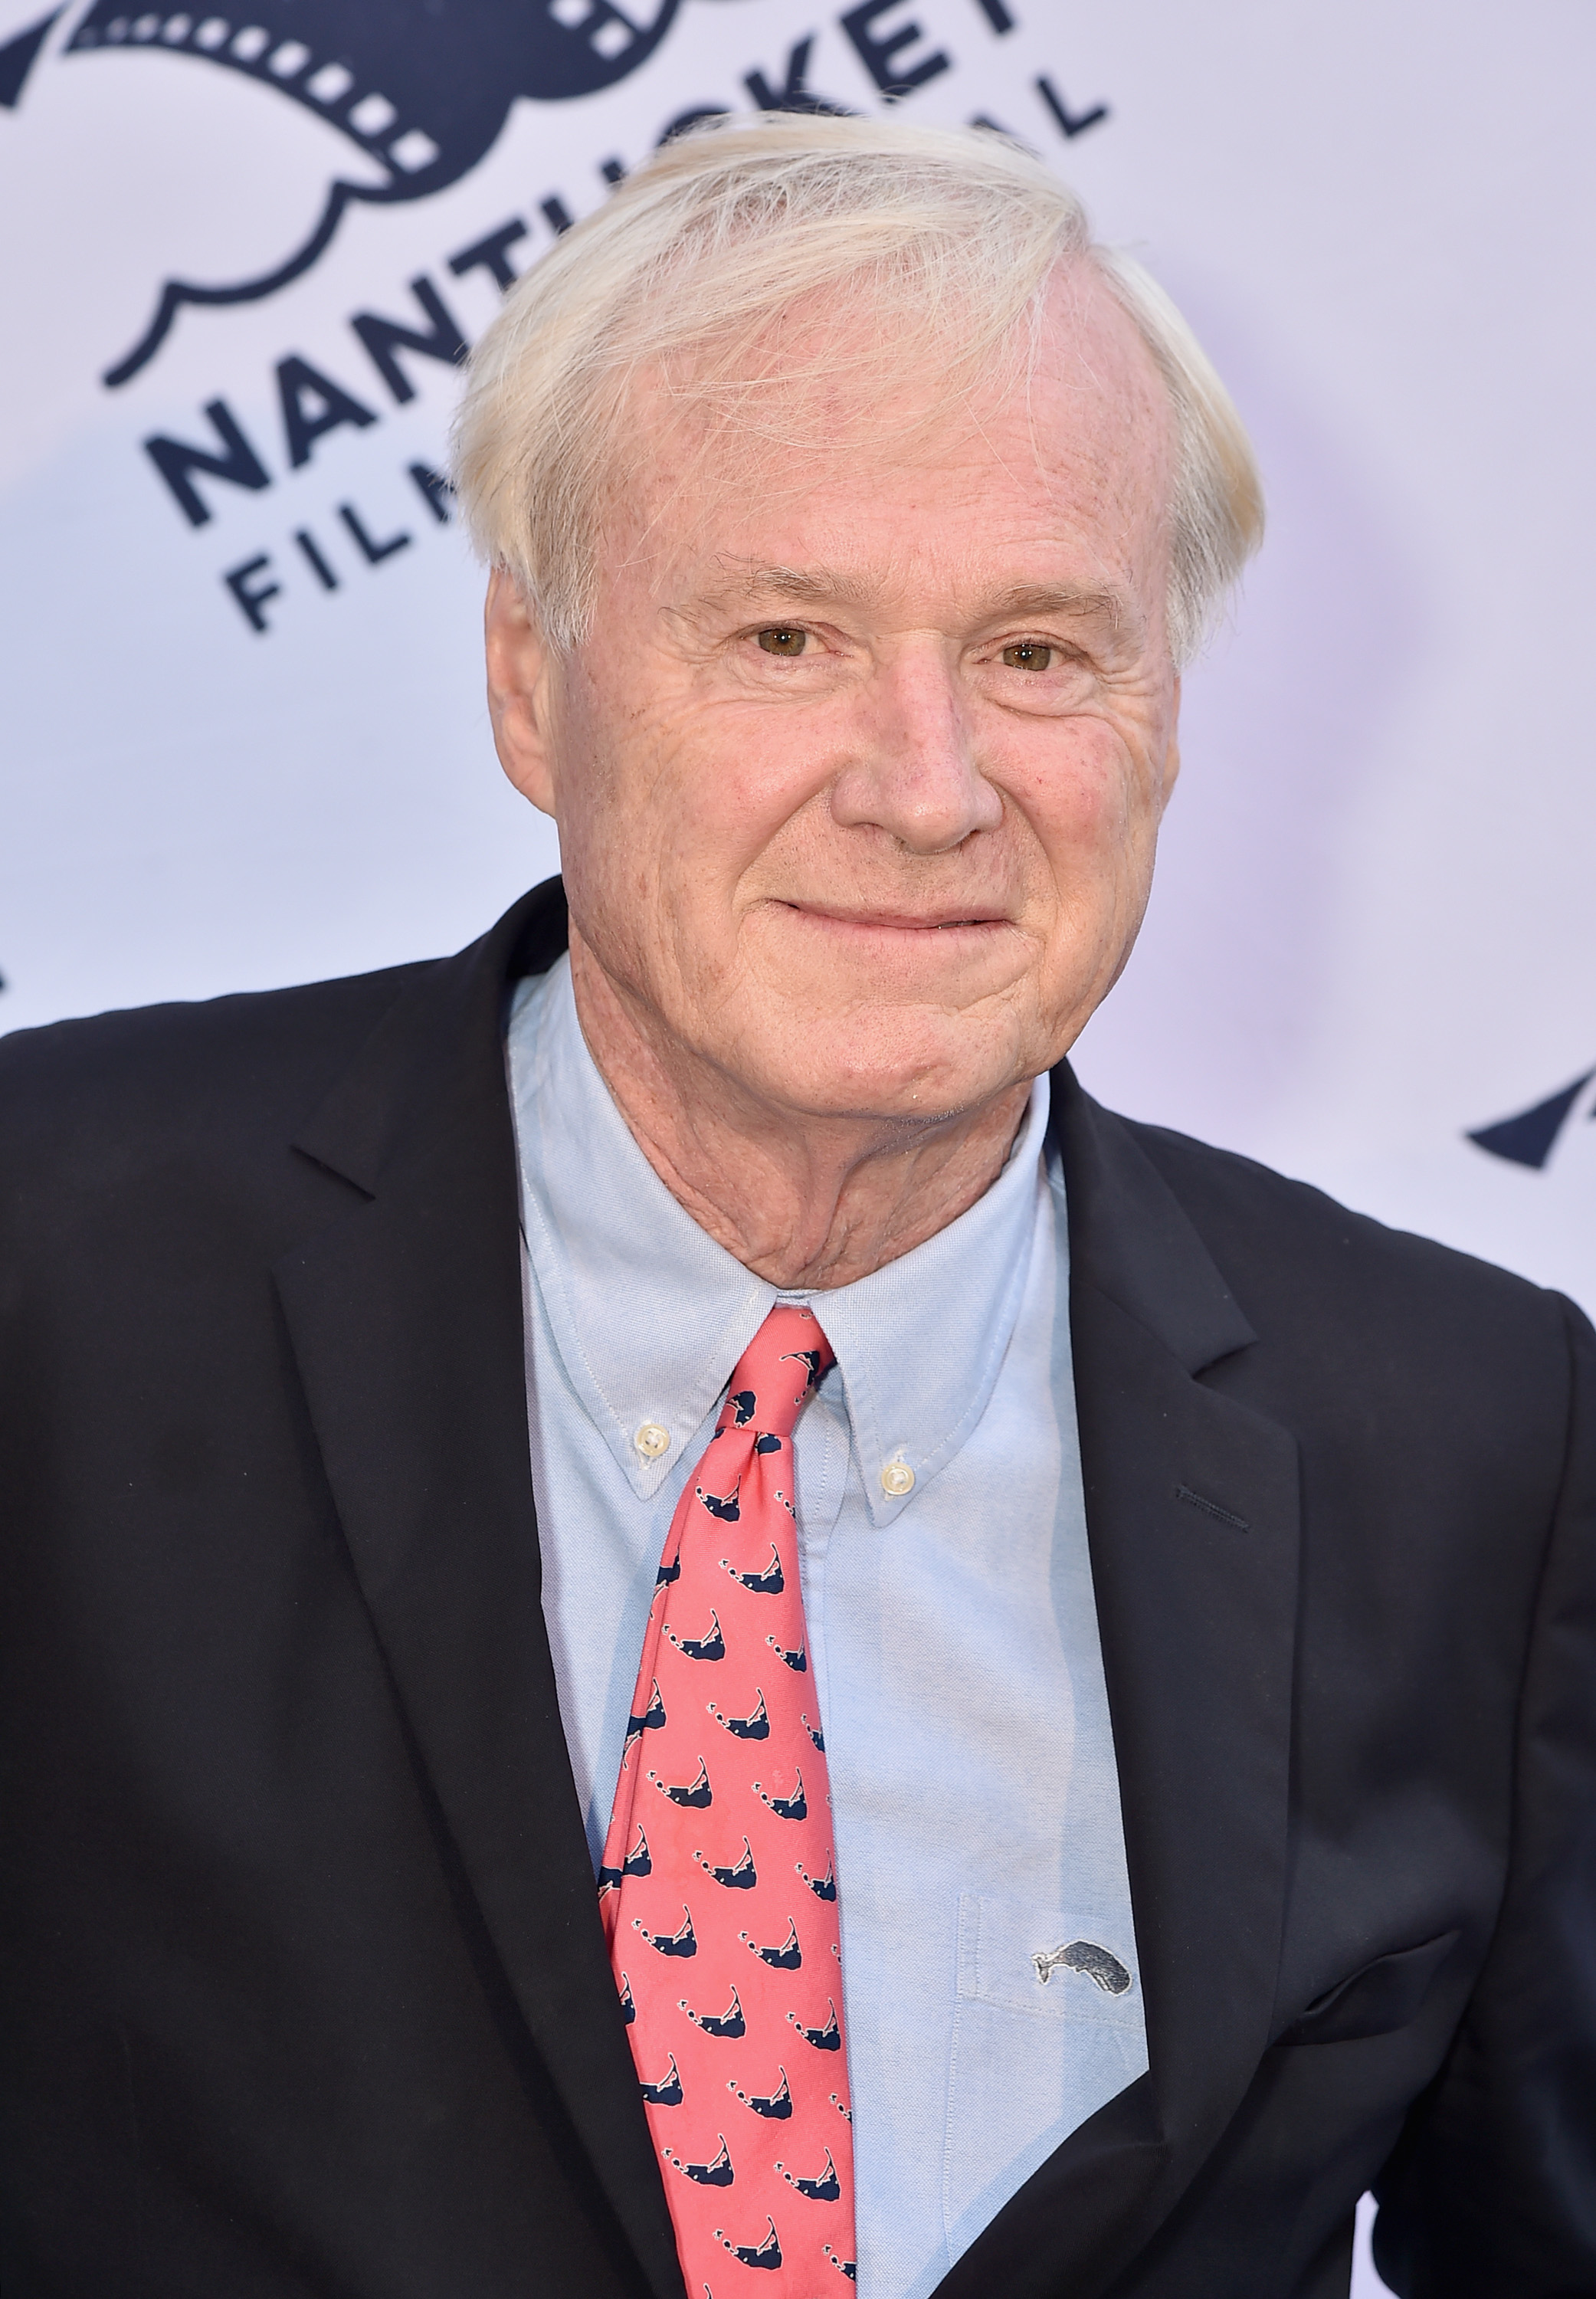 Talk show host Chris Matthews attends the Screenwriters Tribute during the 2017 Nantucket Film Festival - Day 3 on June 23, 2017 in Nantucket, Massachusetts.